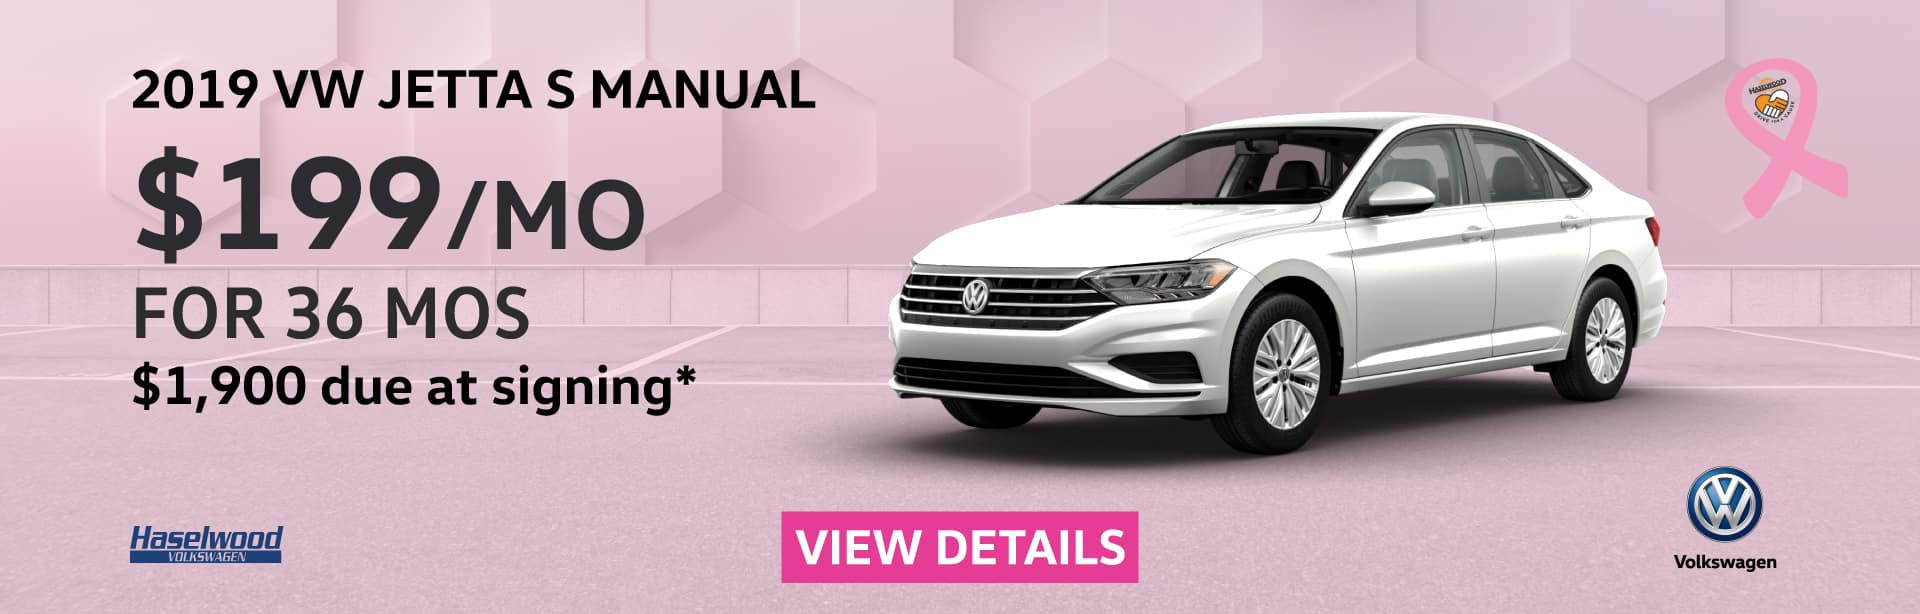 2019 Volkswagen Jetta S Manual  $199/mo. for 36 months $1,900 Due at Signing    * Offer valid on 2019 Volkswagen Jetta S Manual. $199 per mo. for 36 months. Lease with $1,900 due at signing; includes a $595 acquisition fee, lease through Volkswagen Credit. No security deposit required. Valid on VIN: 3VWN57BUXKM115492, 3VWN57BU4KM119022, 3VWN57BUXKM115069. For highly qualified customers on approved top tier credit through Volkswagen Credit. Lessee responsible for maintenance, excessive wear/tear and 20¢/mi over 10K mi/yr. Excludes state and local taxes, tags, registration and title, insurance and dealer charges. Subject to credit approval. 36 monthly payments required. Monthly lease payment based on MSRP of $20,160 and destination charges less a suggested dealer contribution resulting in a Gross capitalized cost of $18,920. Cap cost reduction: $1,240. A negotiable dealer documentary service fee of up to $150 may be added to the sale price or capitalized cost. See dealer for complete details and restrictions. 6 years/72,000 miles (whichever occurs first). New Vehicle Limited Warranty on MY2018 and newer VW vehicles, excluding e-Golf. See owner's literature or dealer for warranty exclusions and limitations. Exp. 11/1/2019.